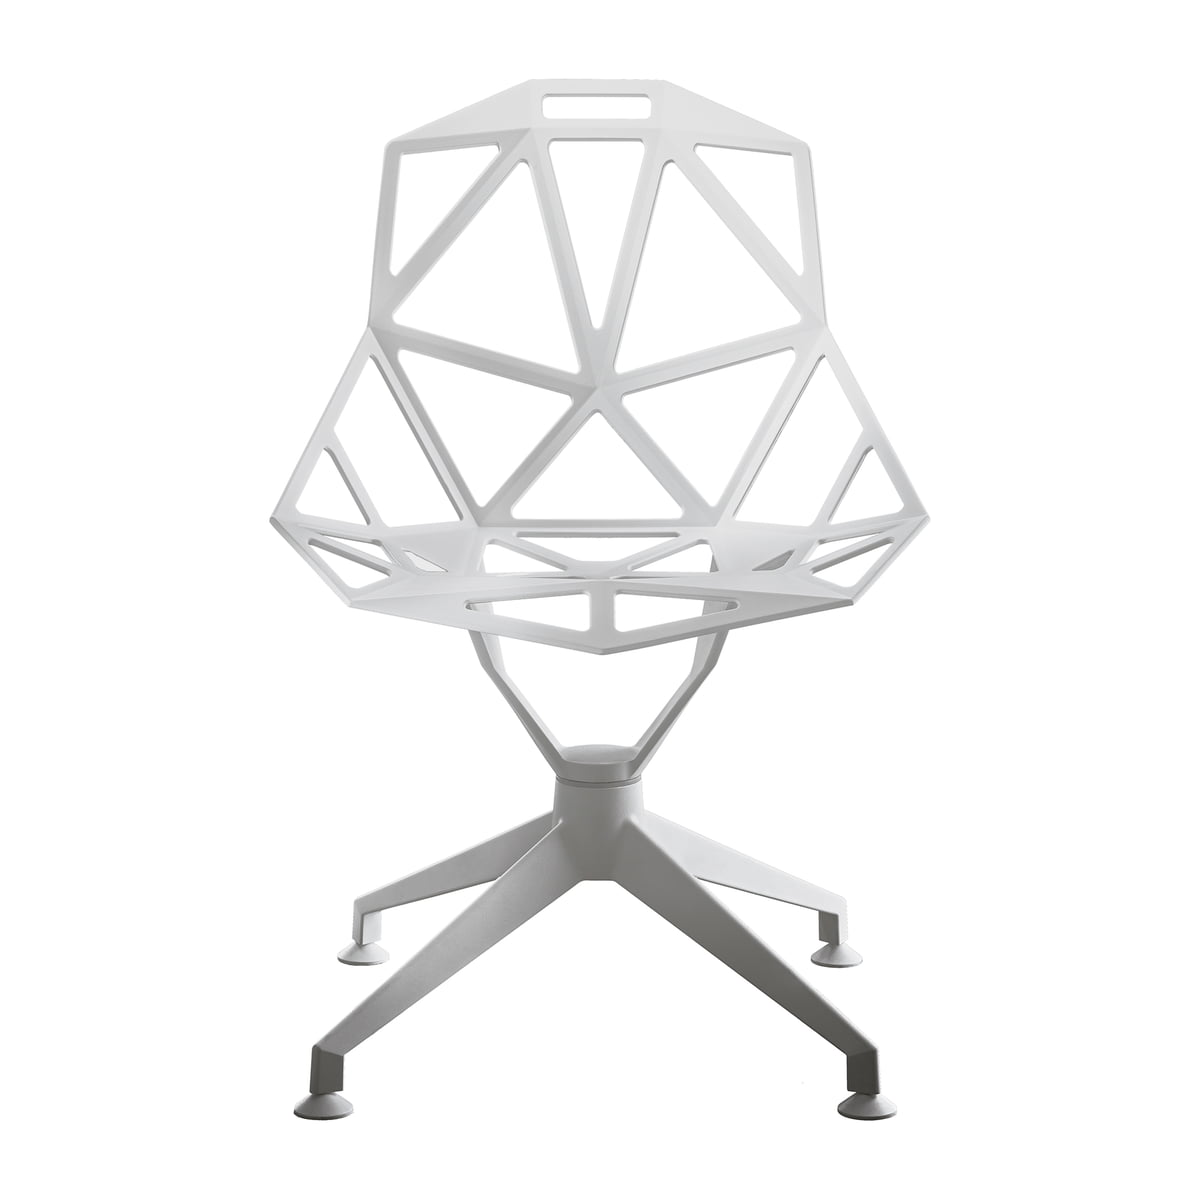 Magis chair one 4star connox for Magis chair one